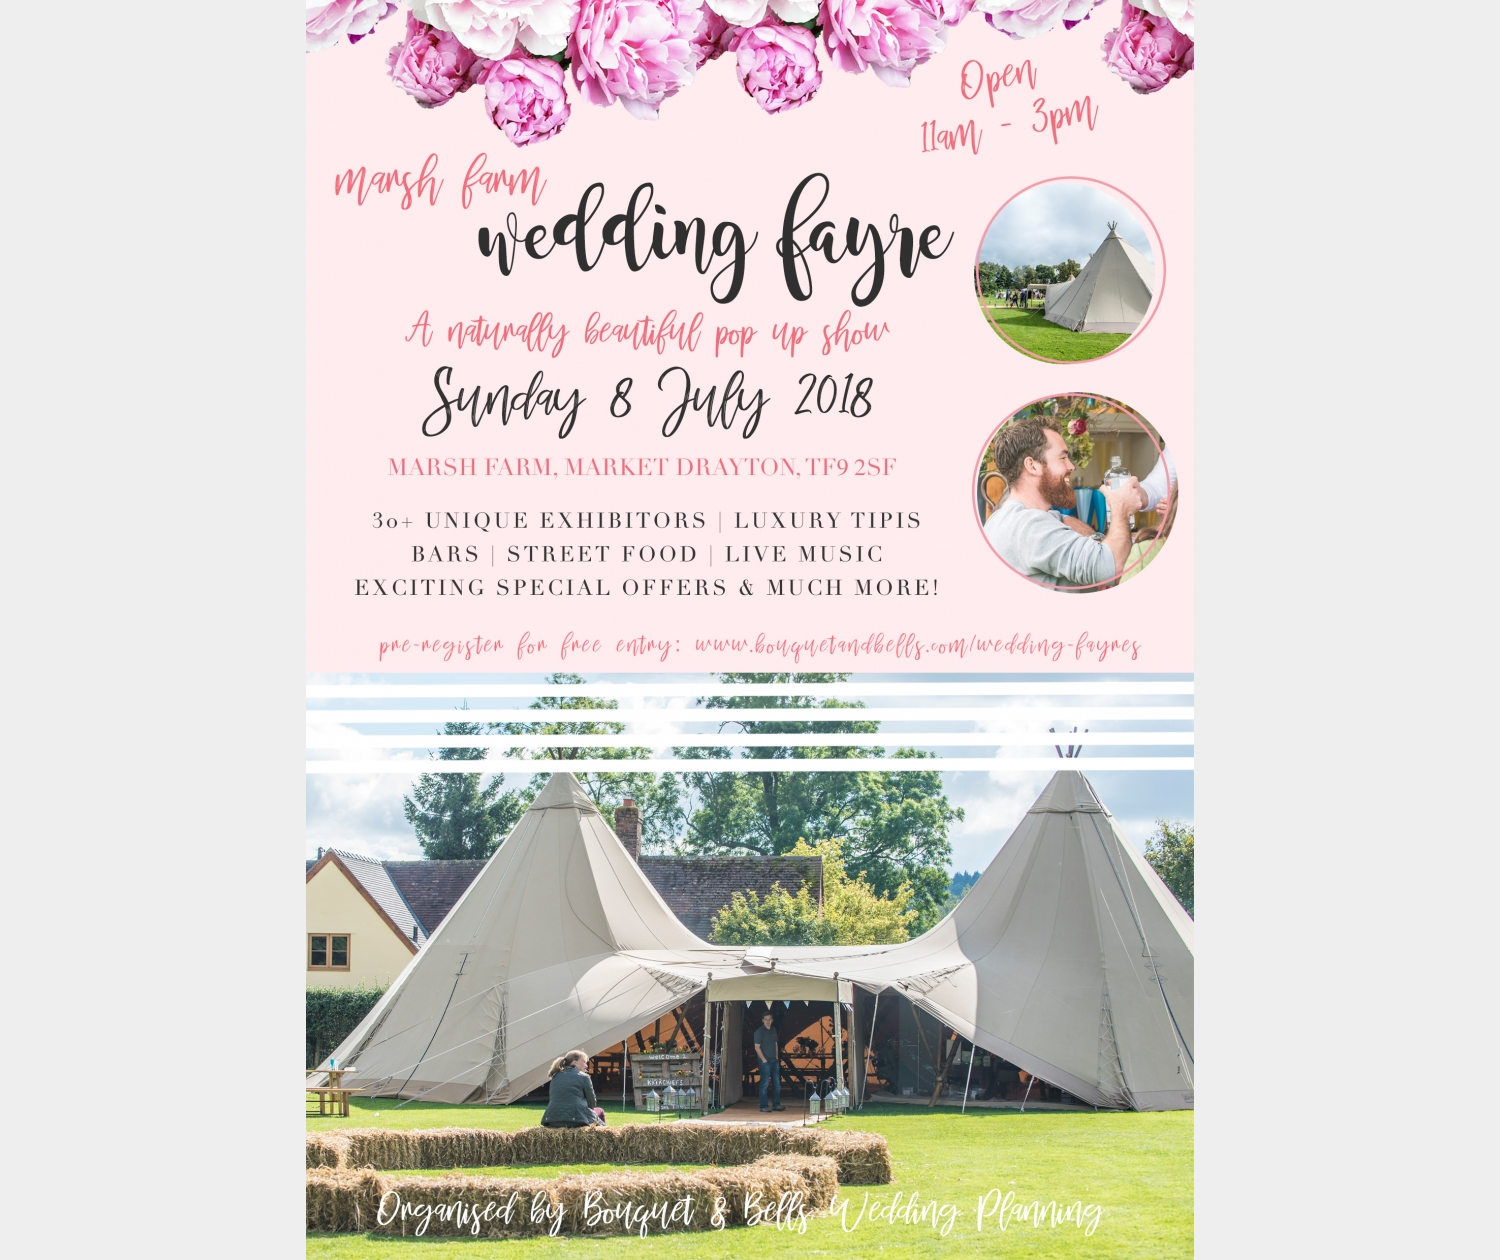 Marsh Farm Wedding Fayre